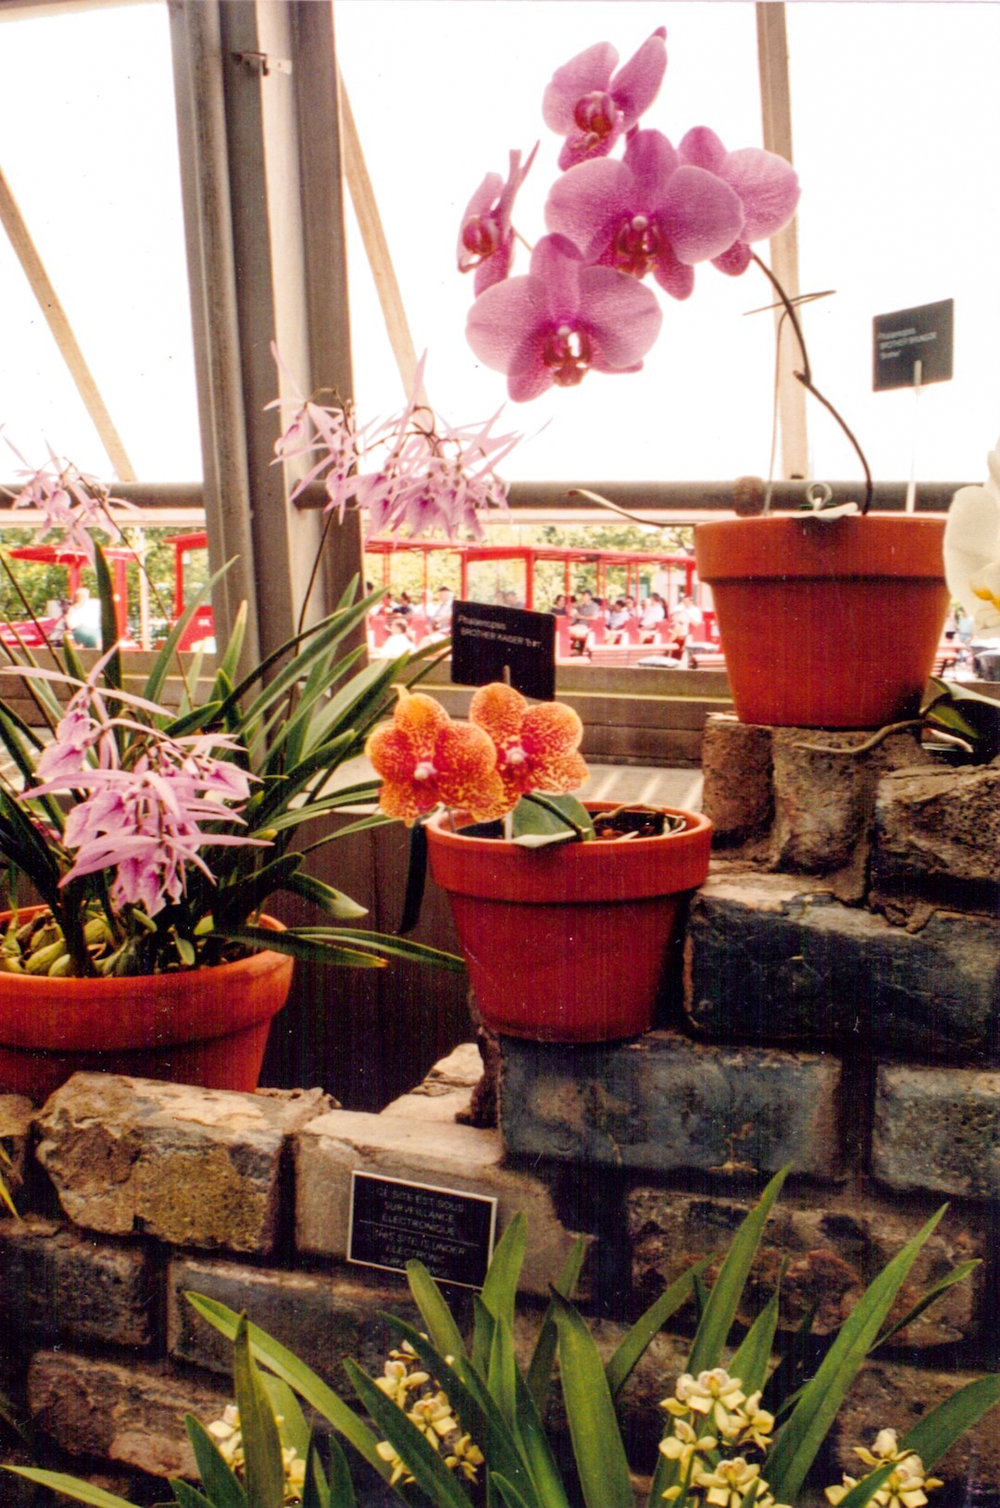 GeorginaCook_memory_scans_orchids_photo_film.jpg